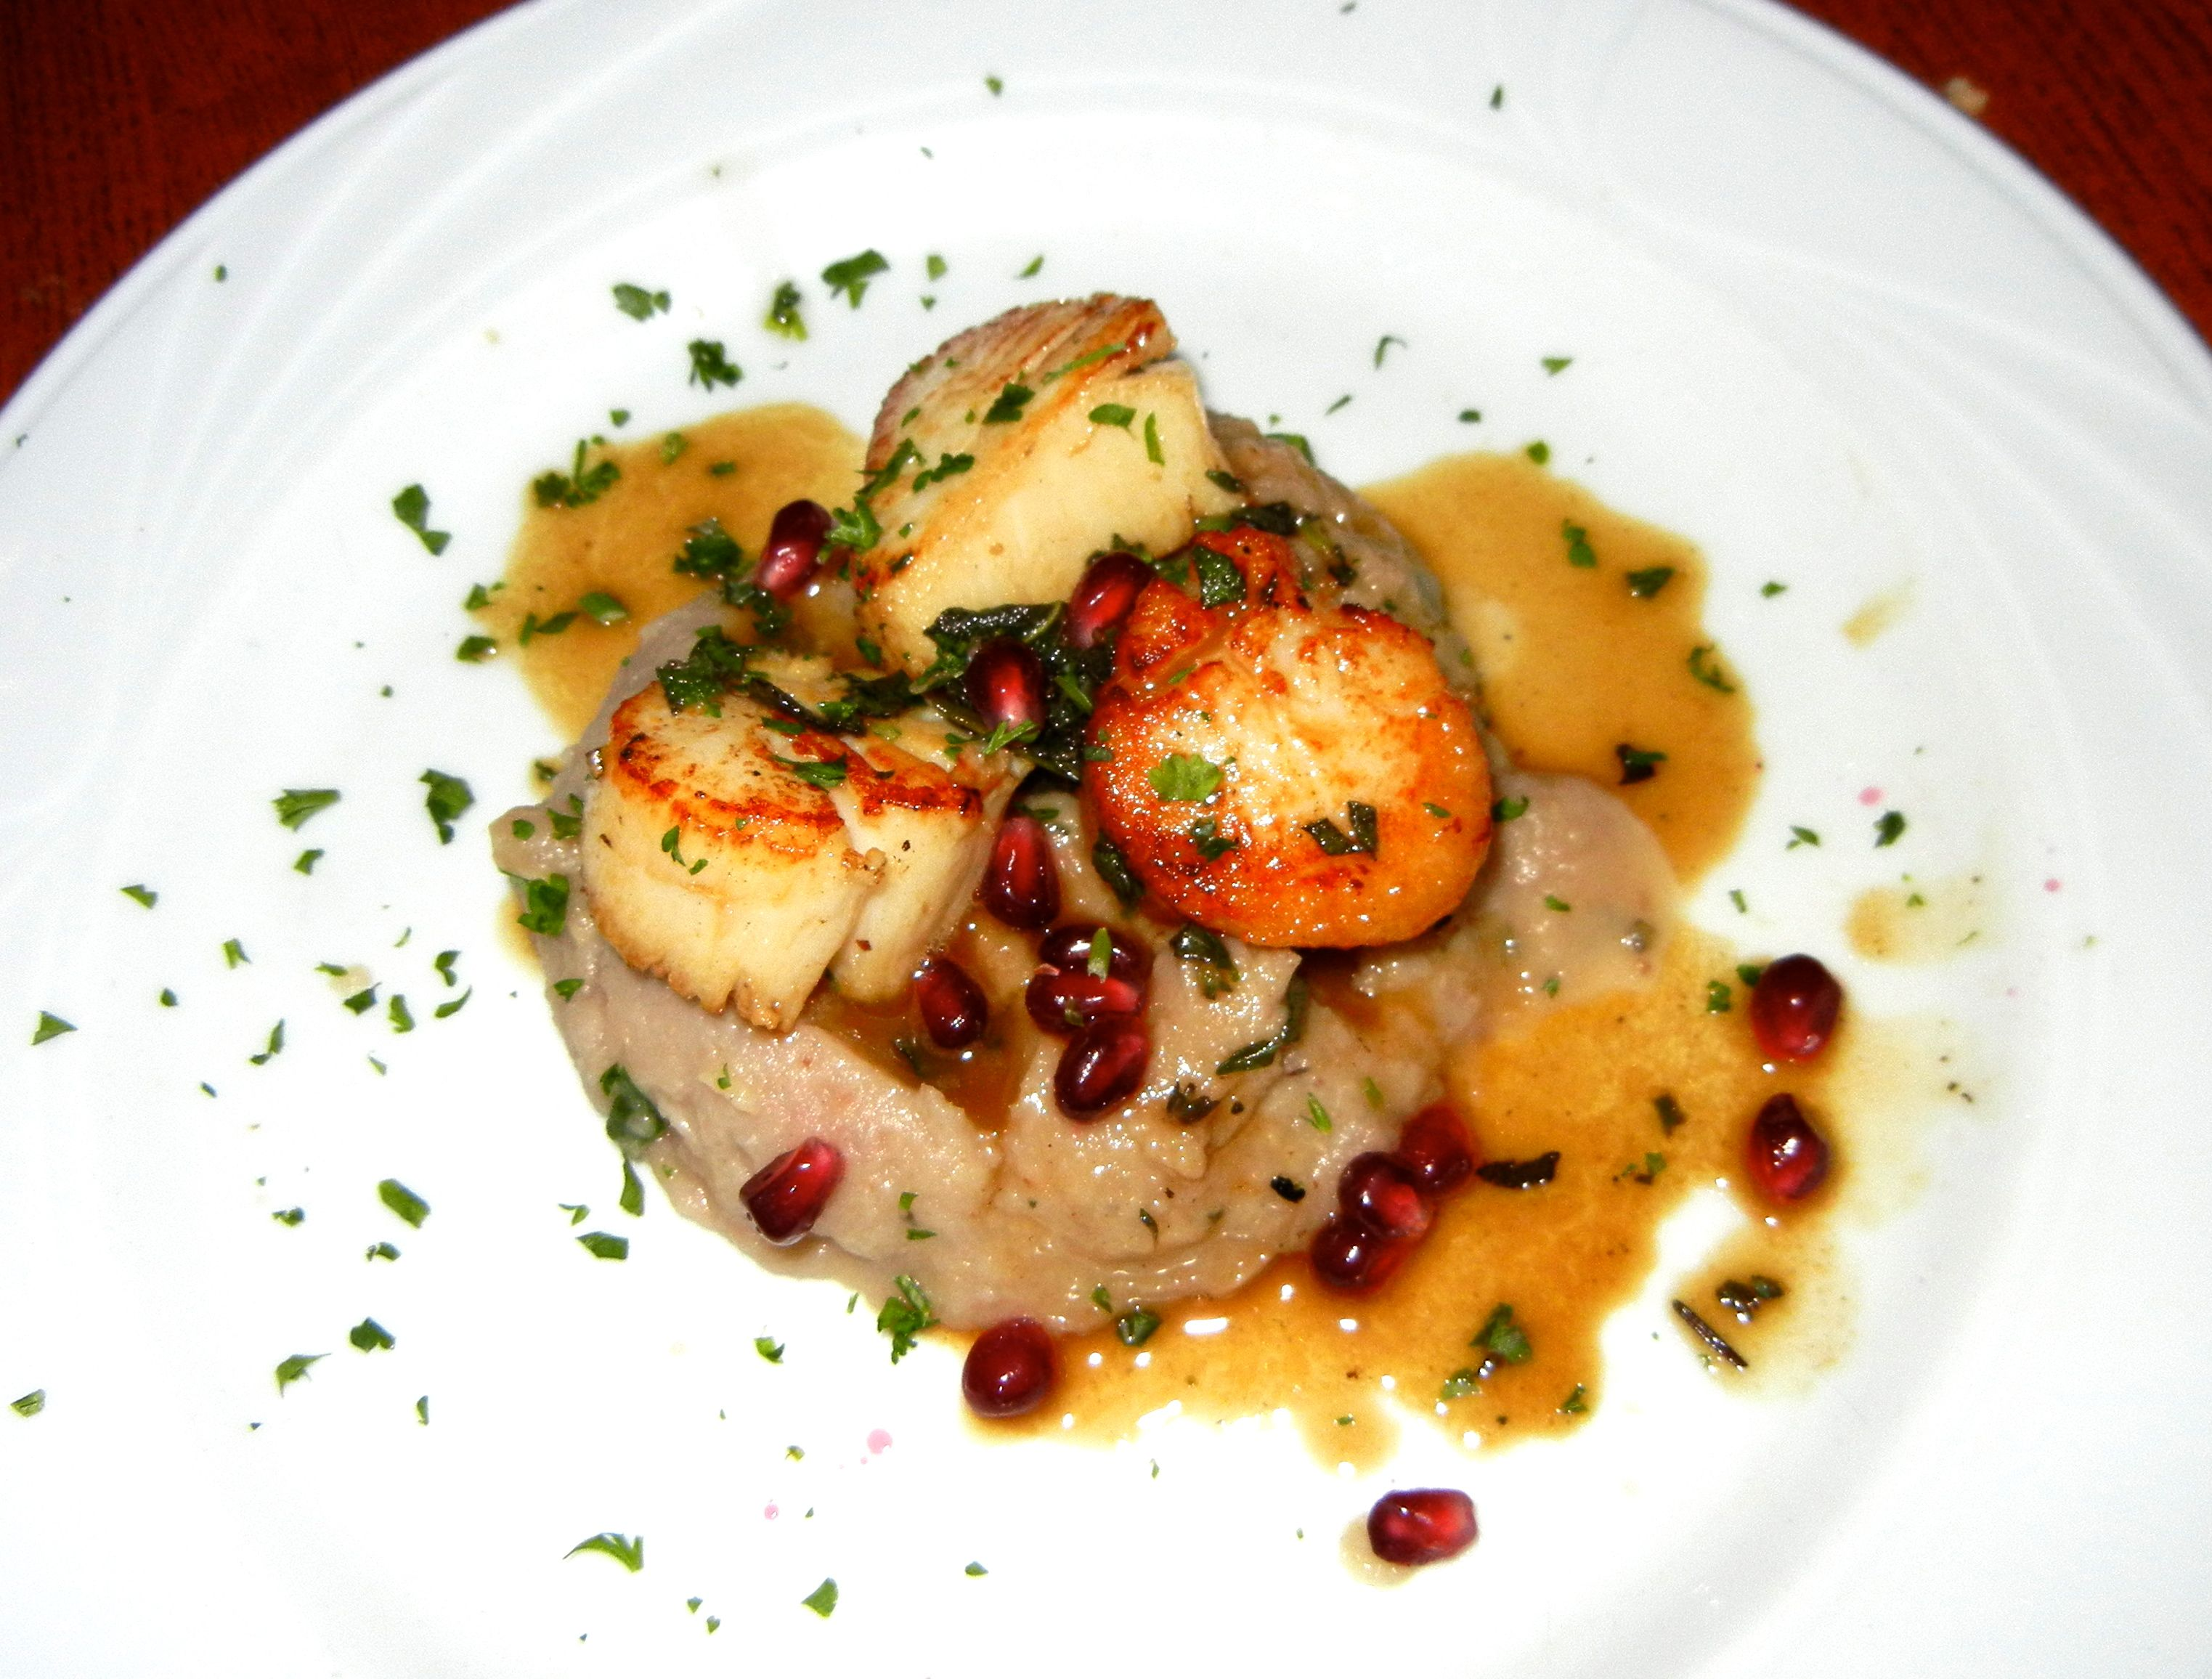 Pan Seared Sea Scallops Served Over Roasted Parsnip Chestnut Puree Finished With Sage Brown Er At The Red House Restaurant In Cambridge Ma